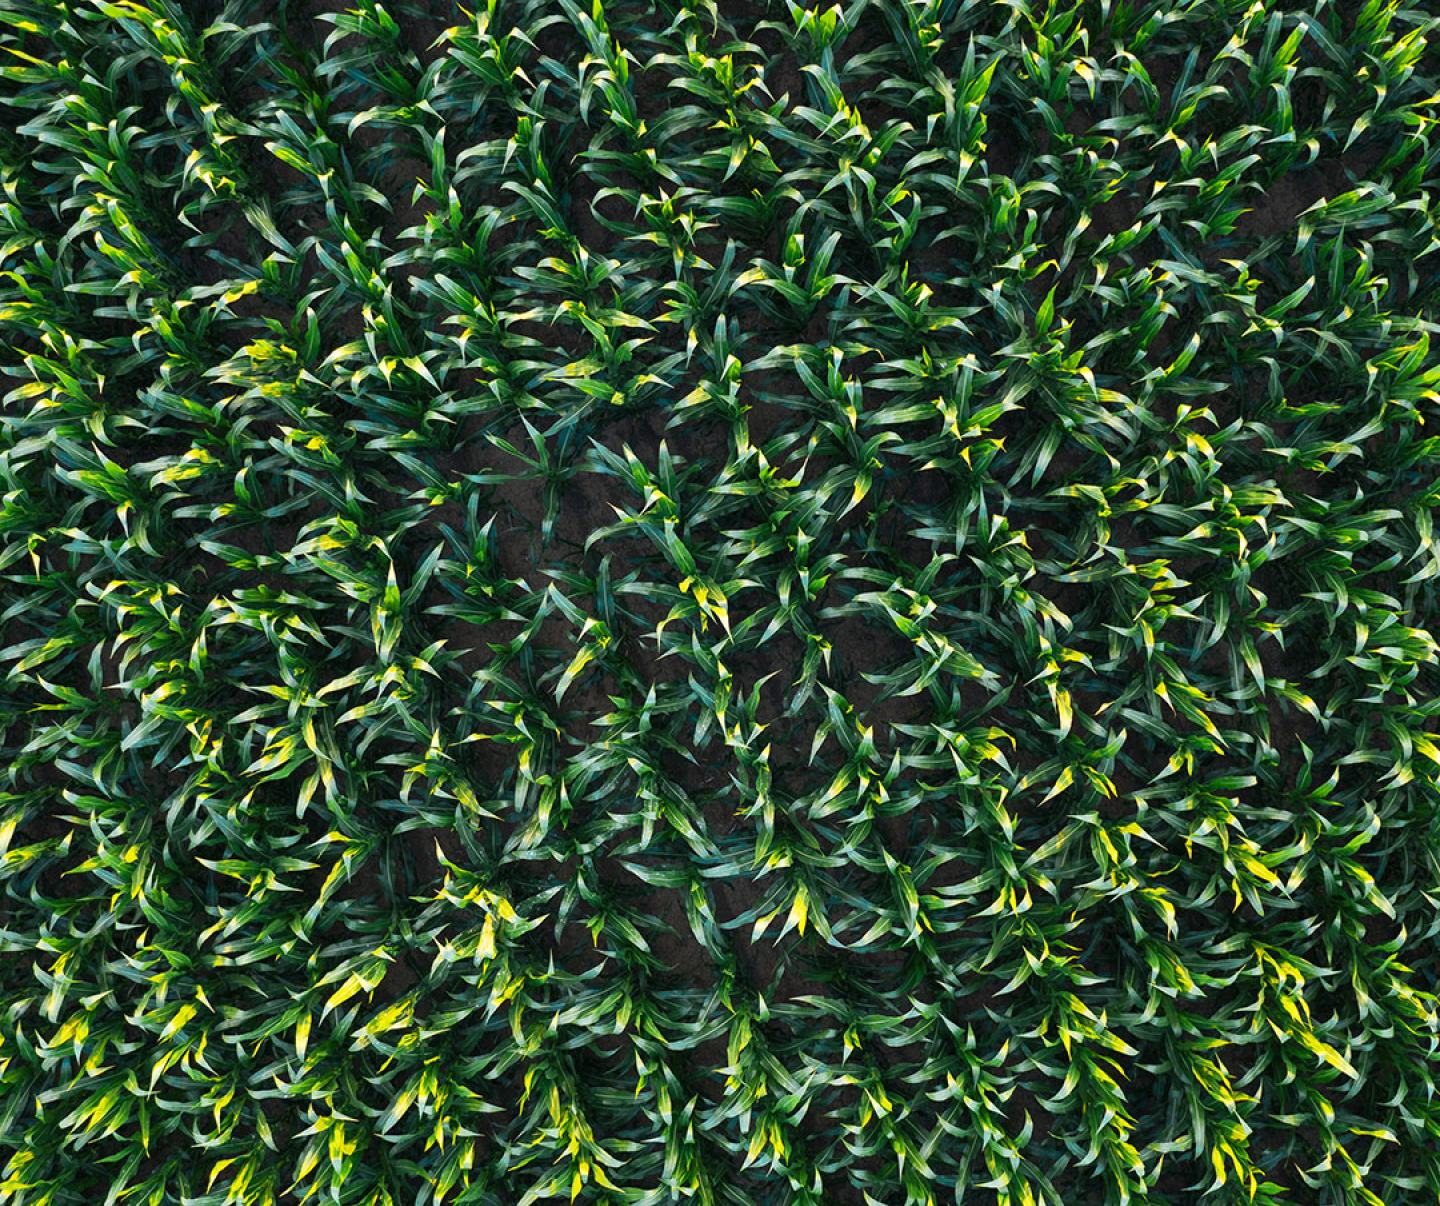 Aerial shot of corn crop